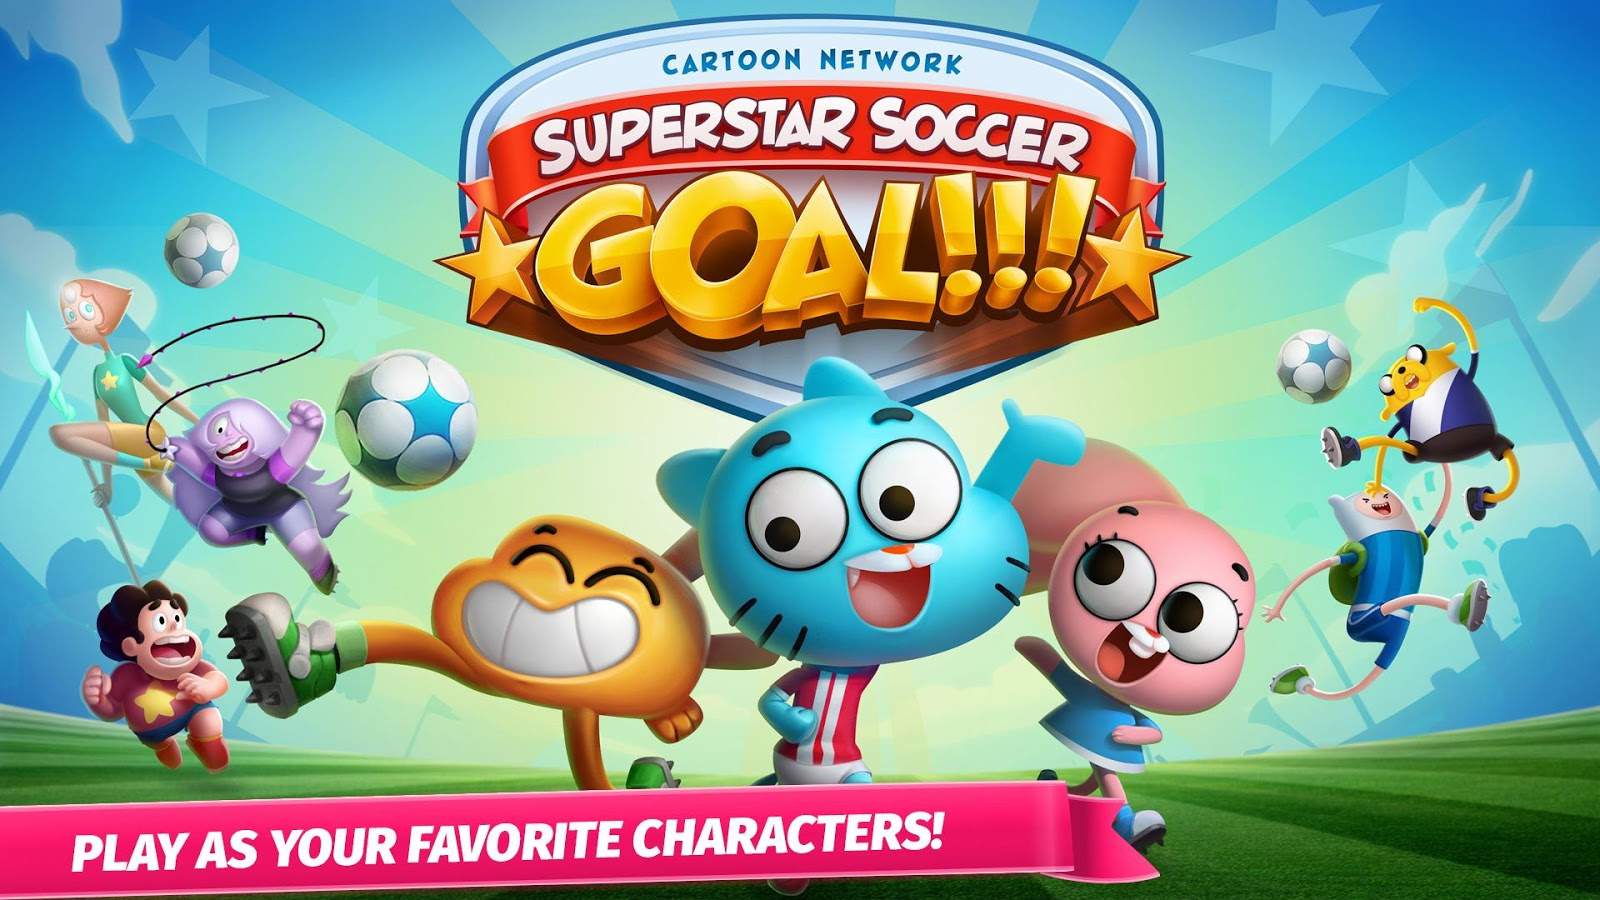 CN Superstar Soccer: Goal!!! Screenshot 0